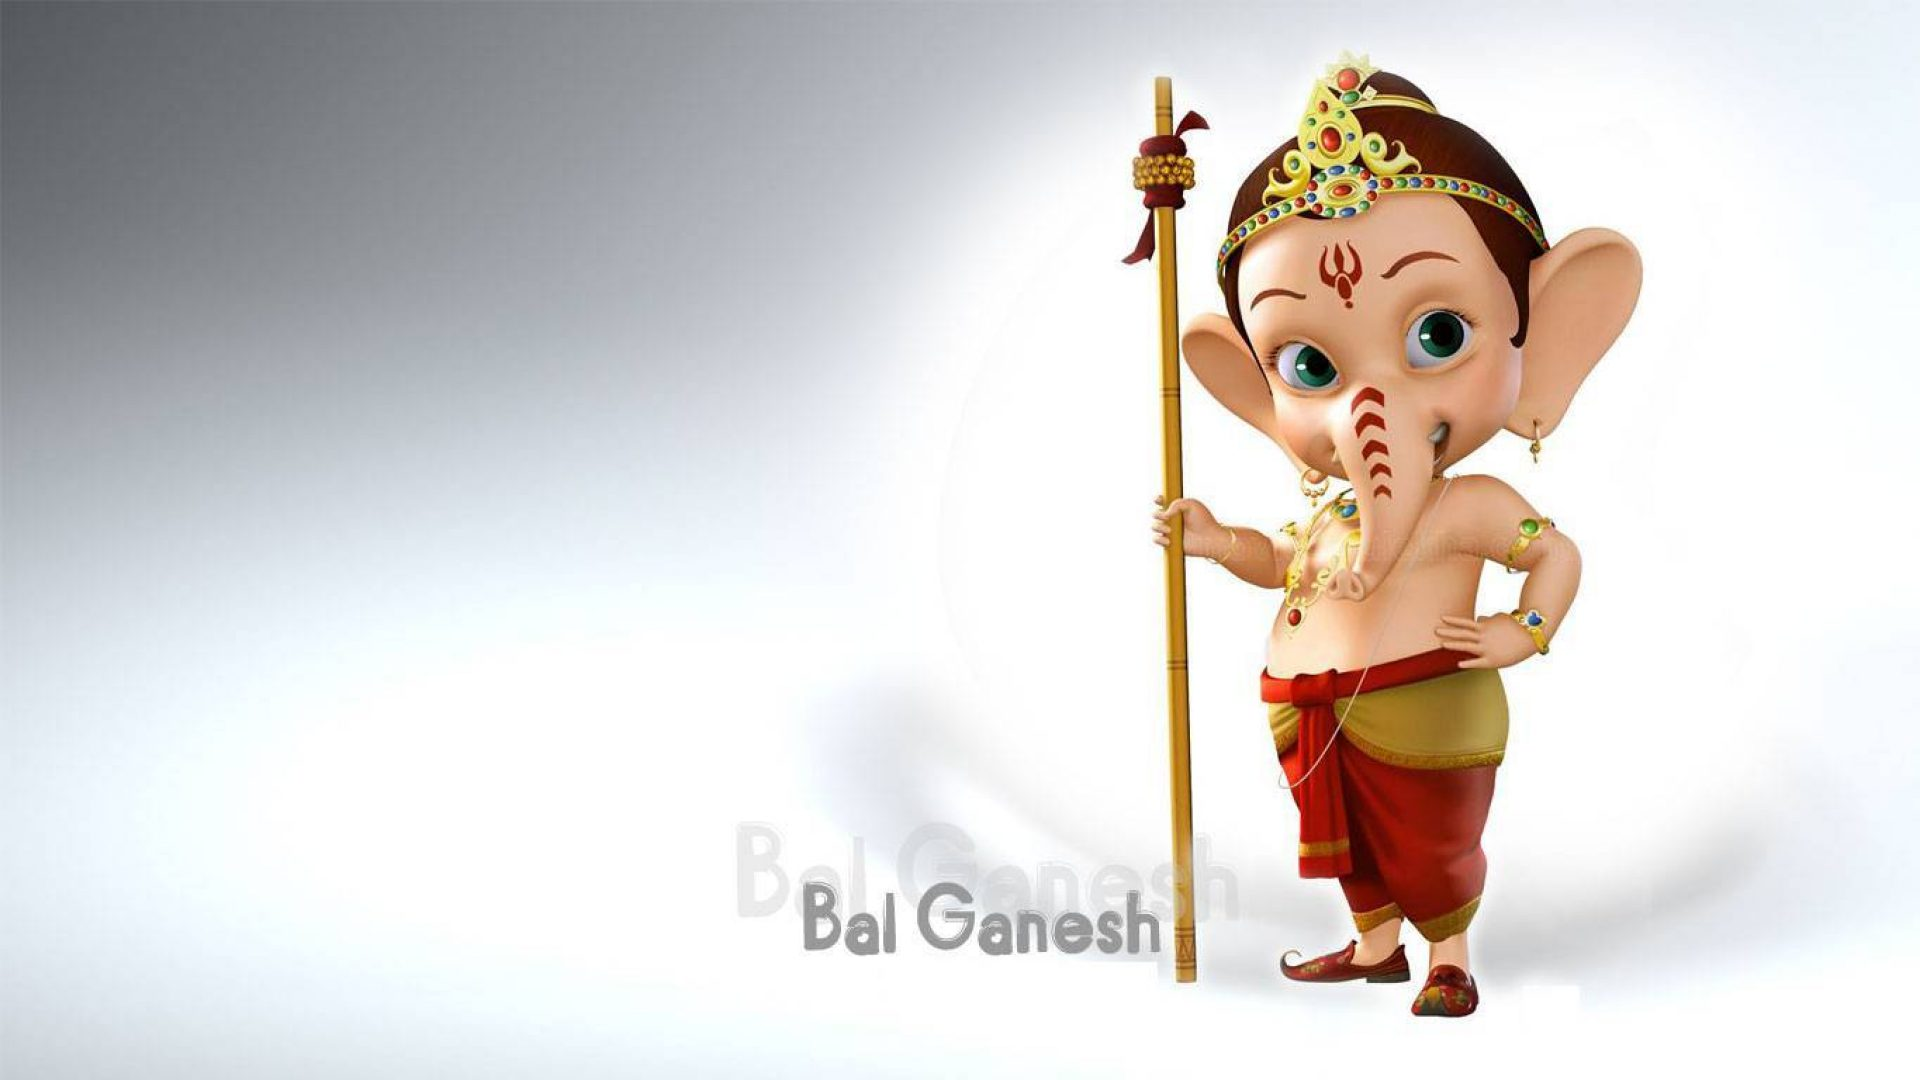 Www Hindu God Wallpaper Com Cute Ganeshji Little Bal Ganesh 3d Hd Wallpaper 1366 215 768 Hindu Gods